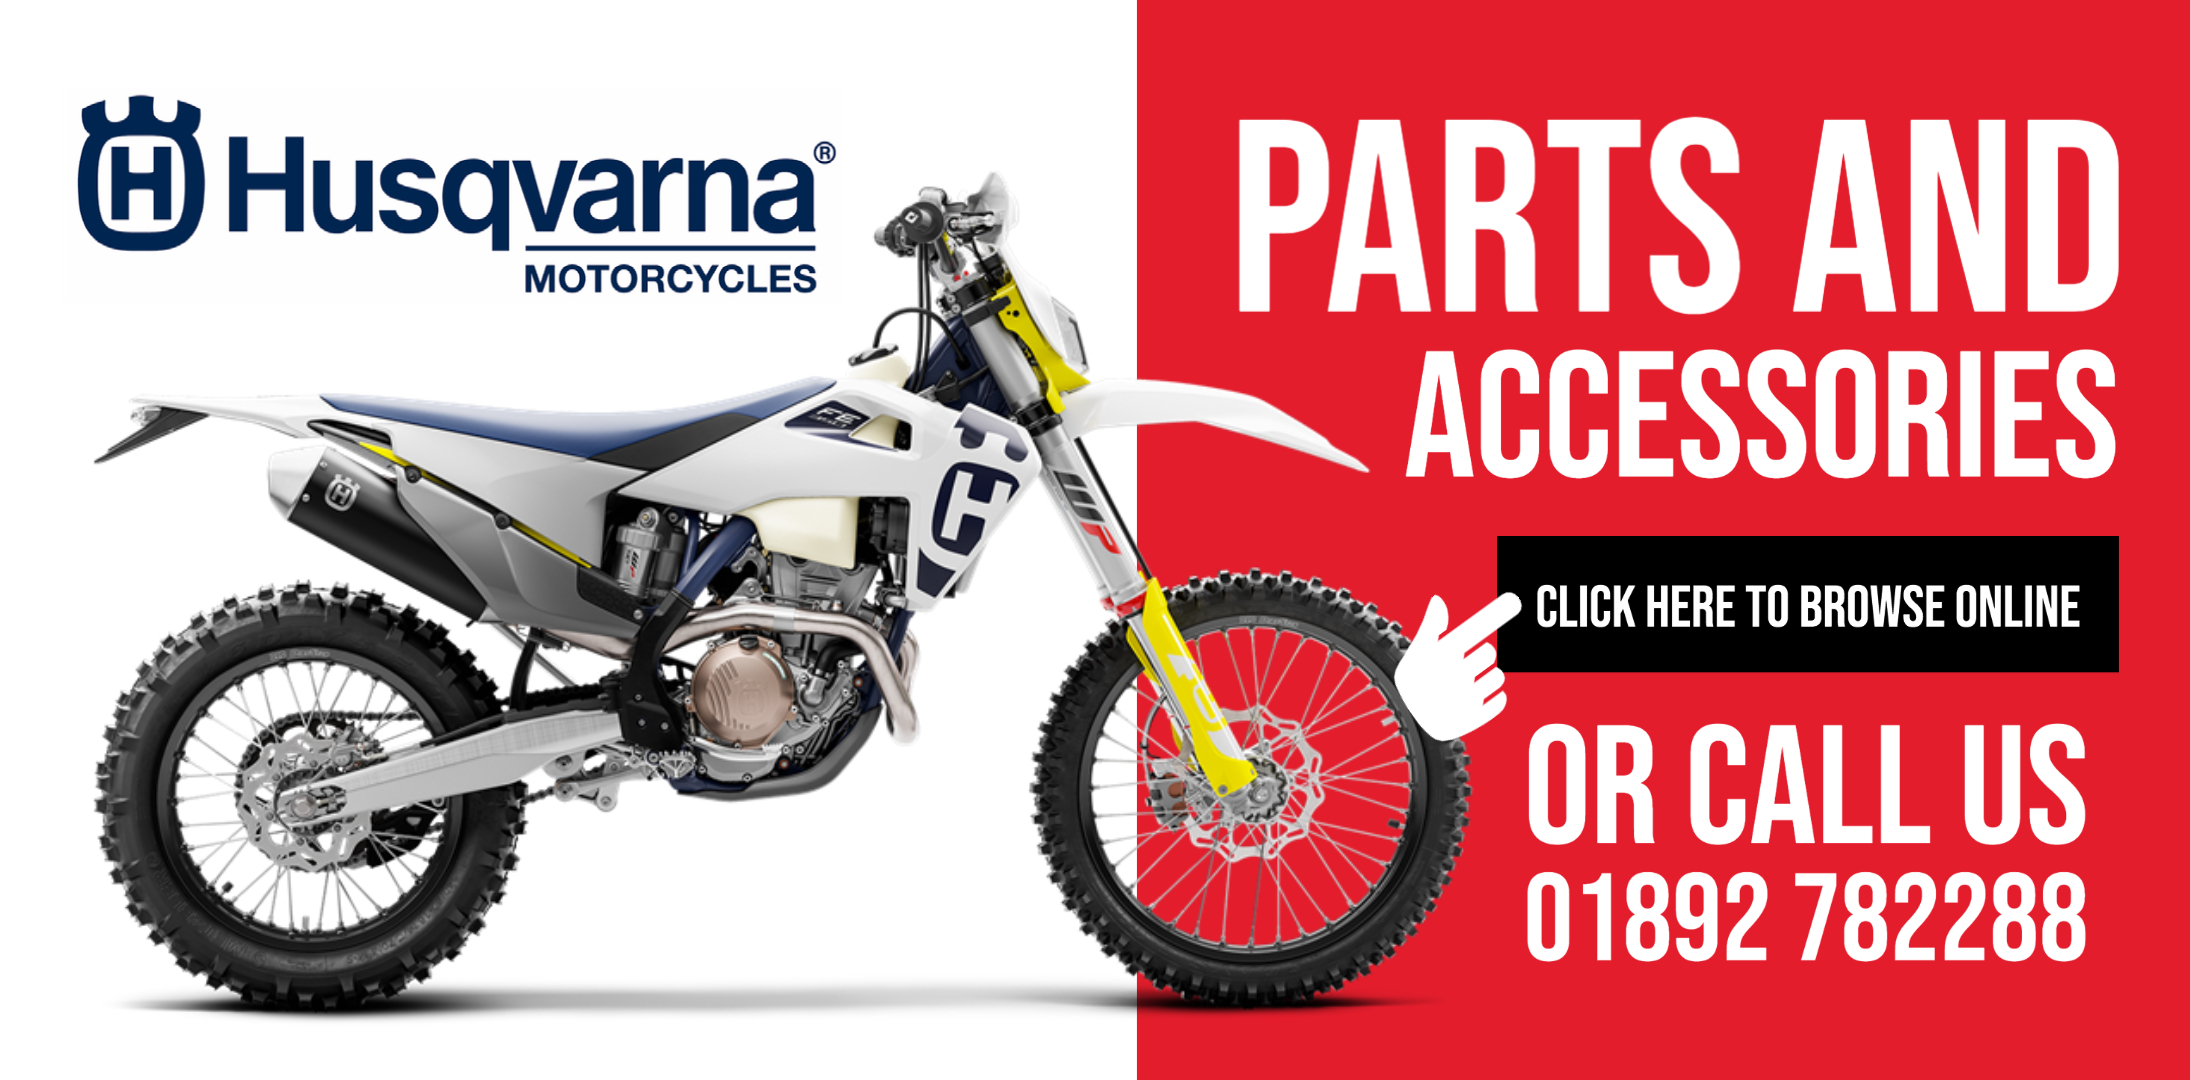 Husqvarna Motorcycles Parts and Accessories